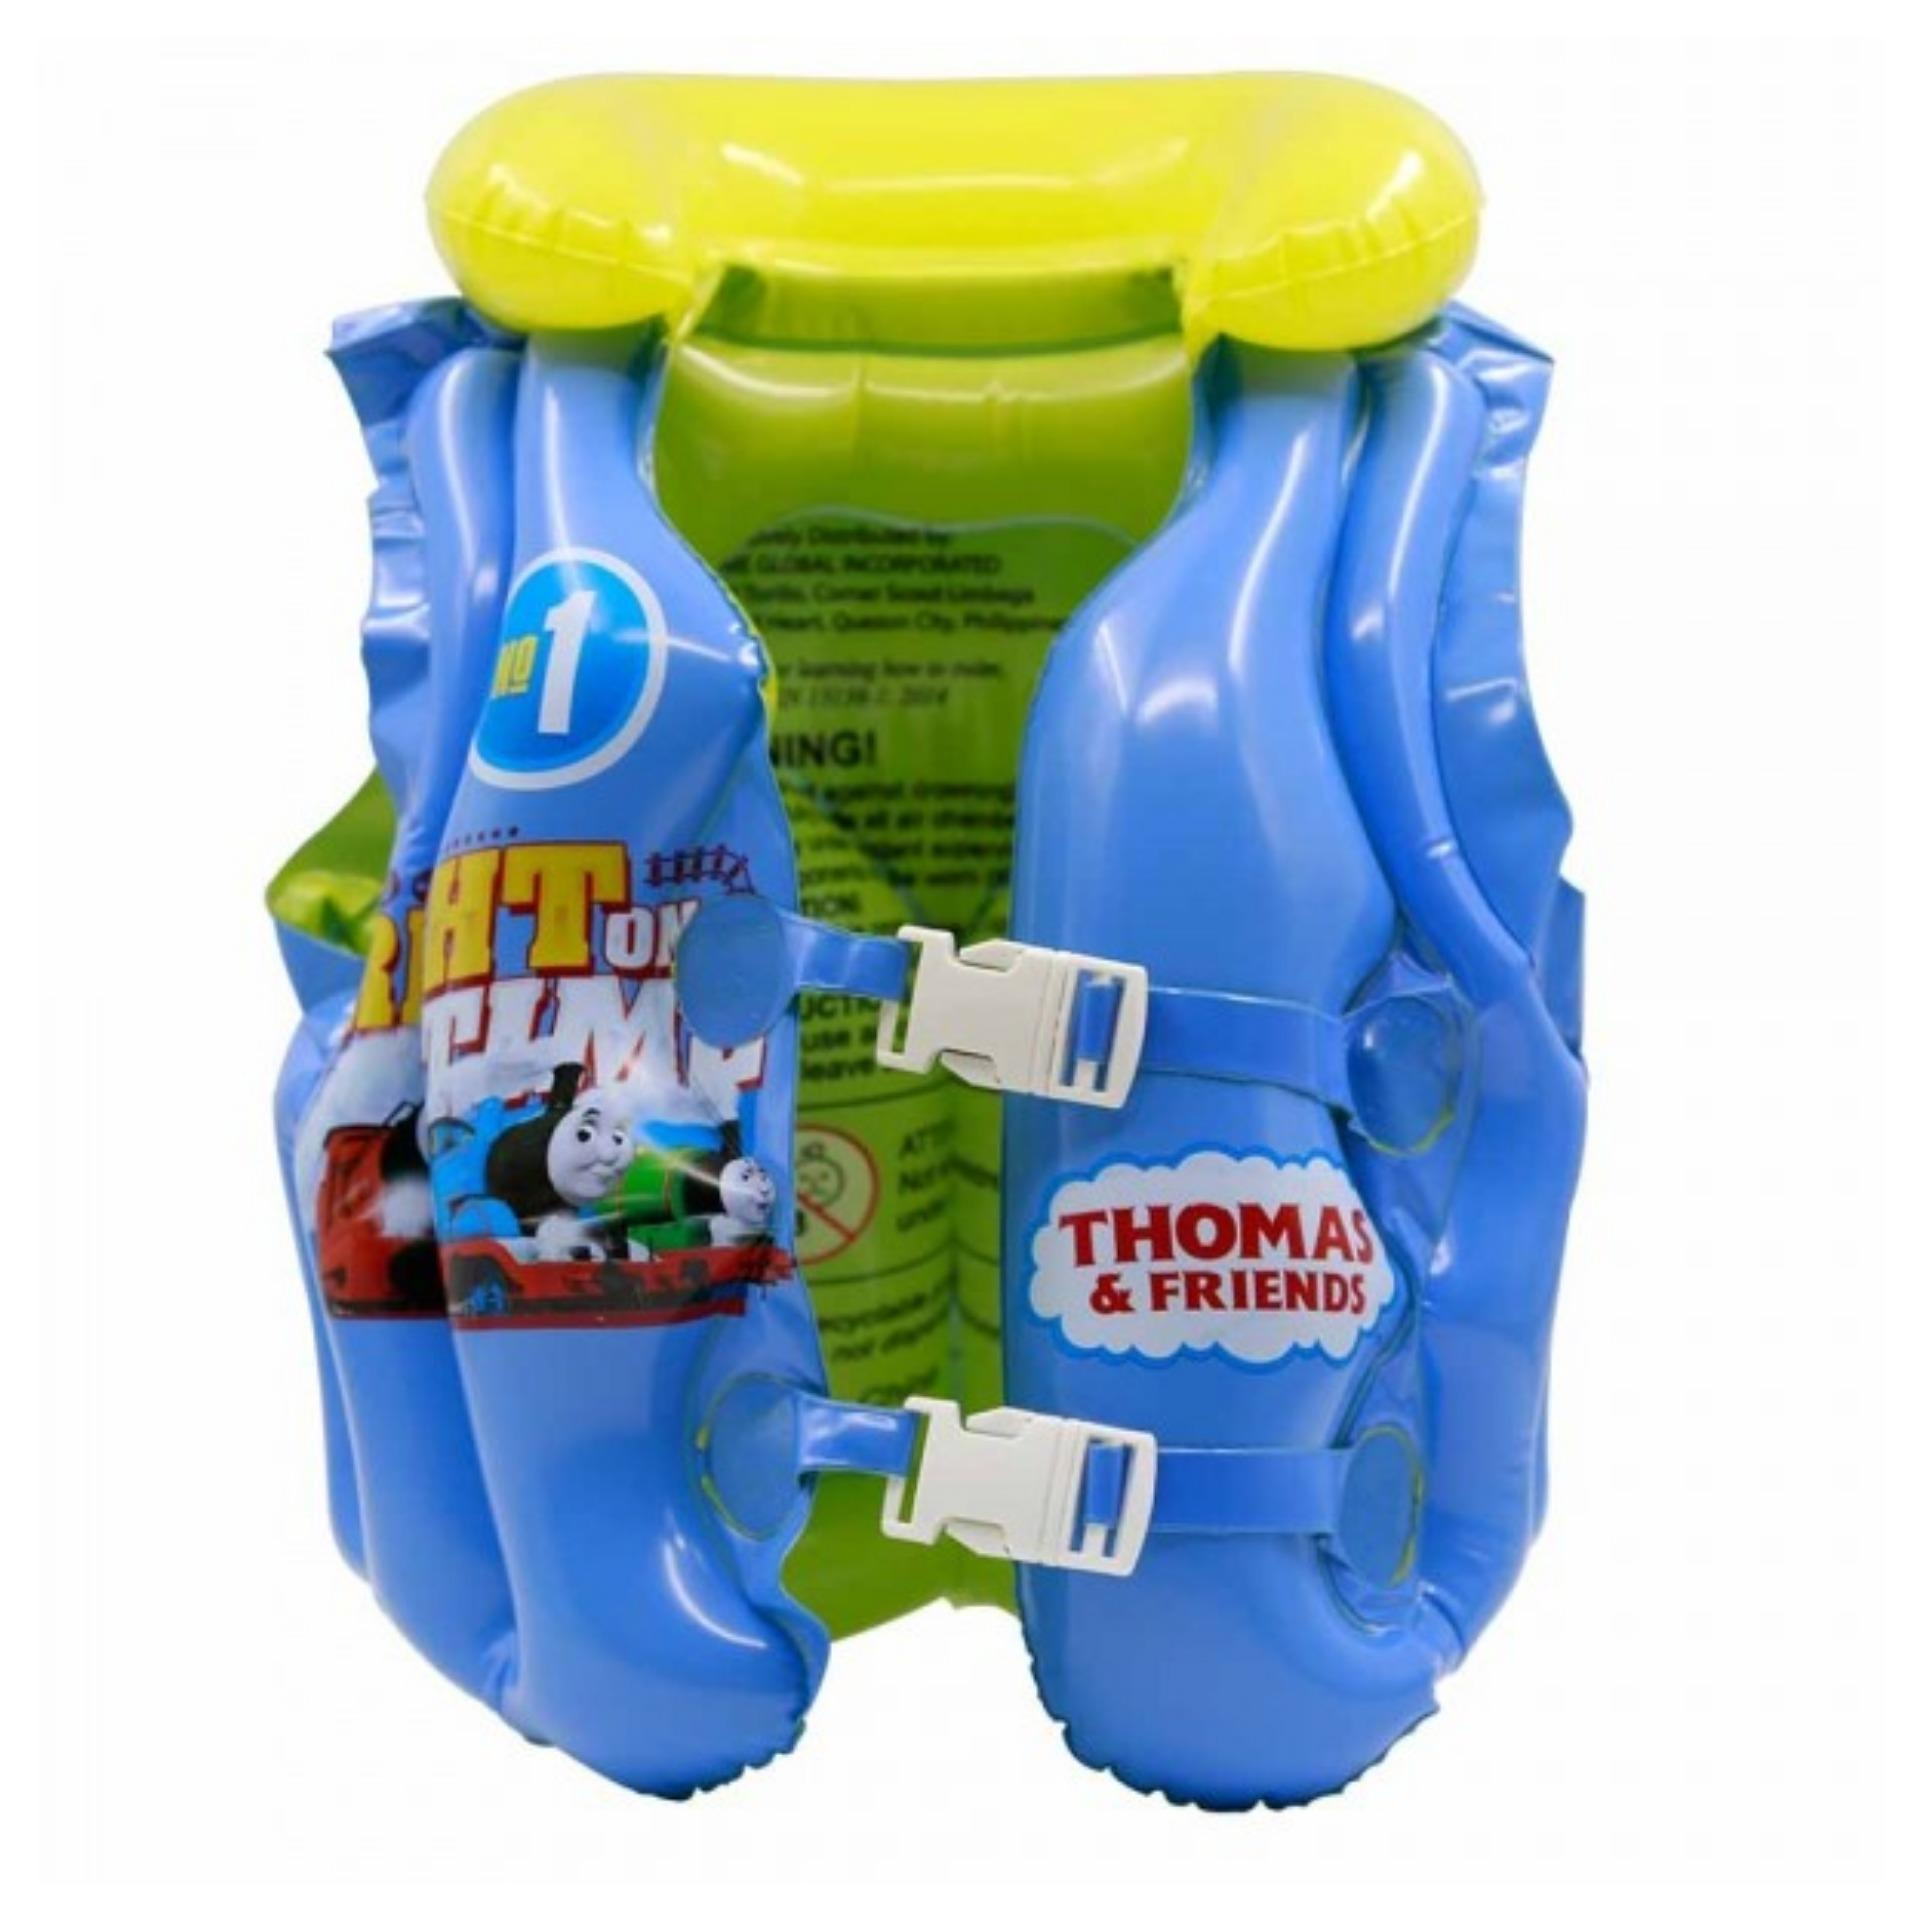 f17ddb8c7222 Water Toys for sale - Swimming Pool Games online brands